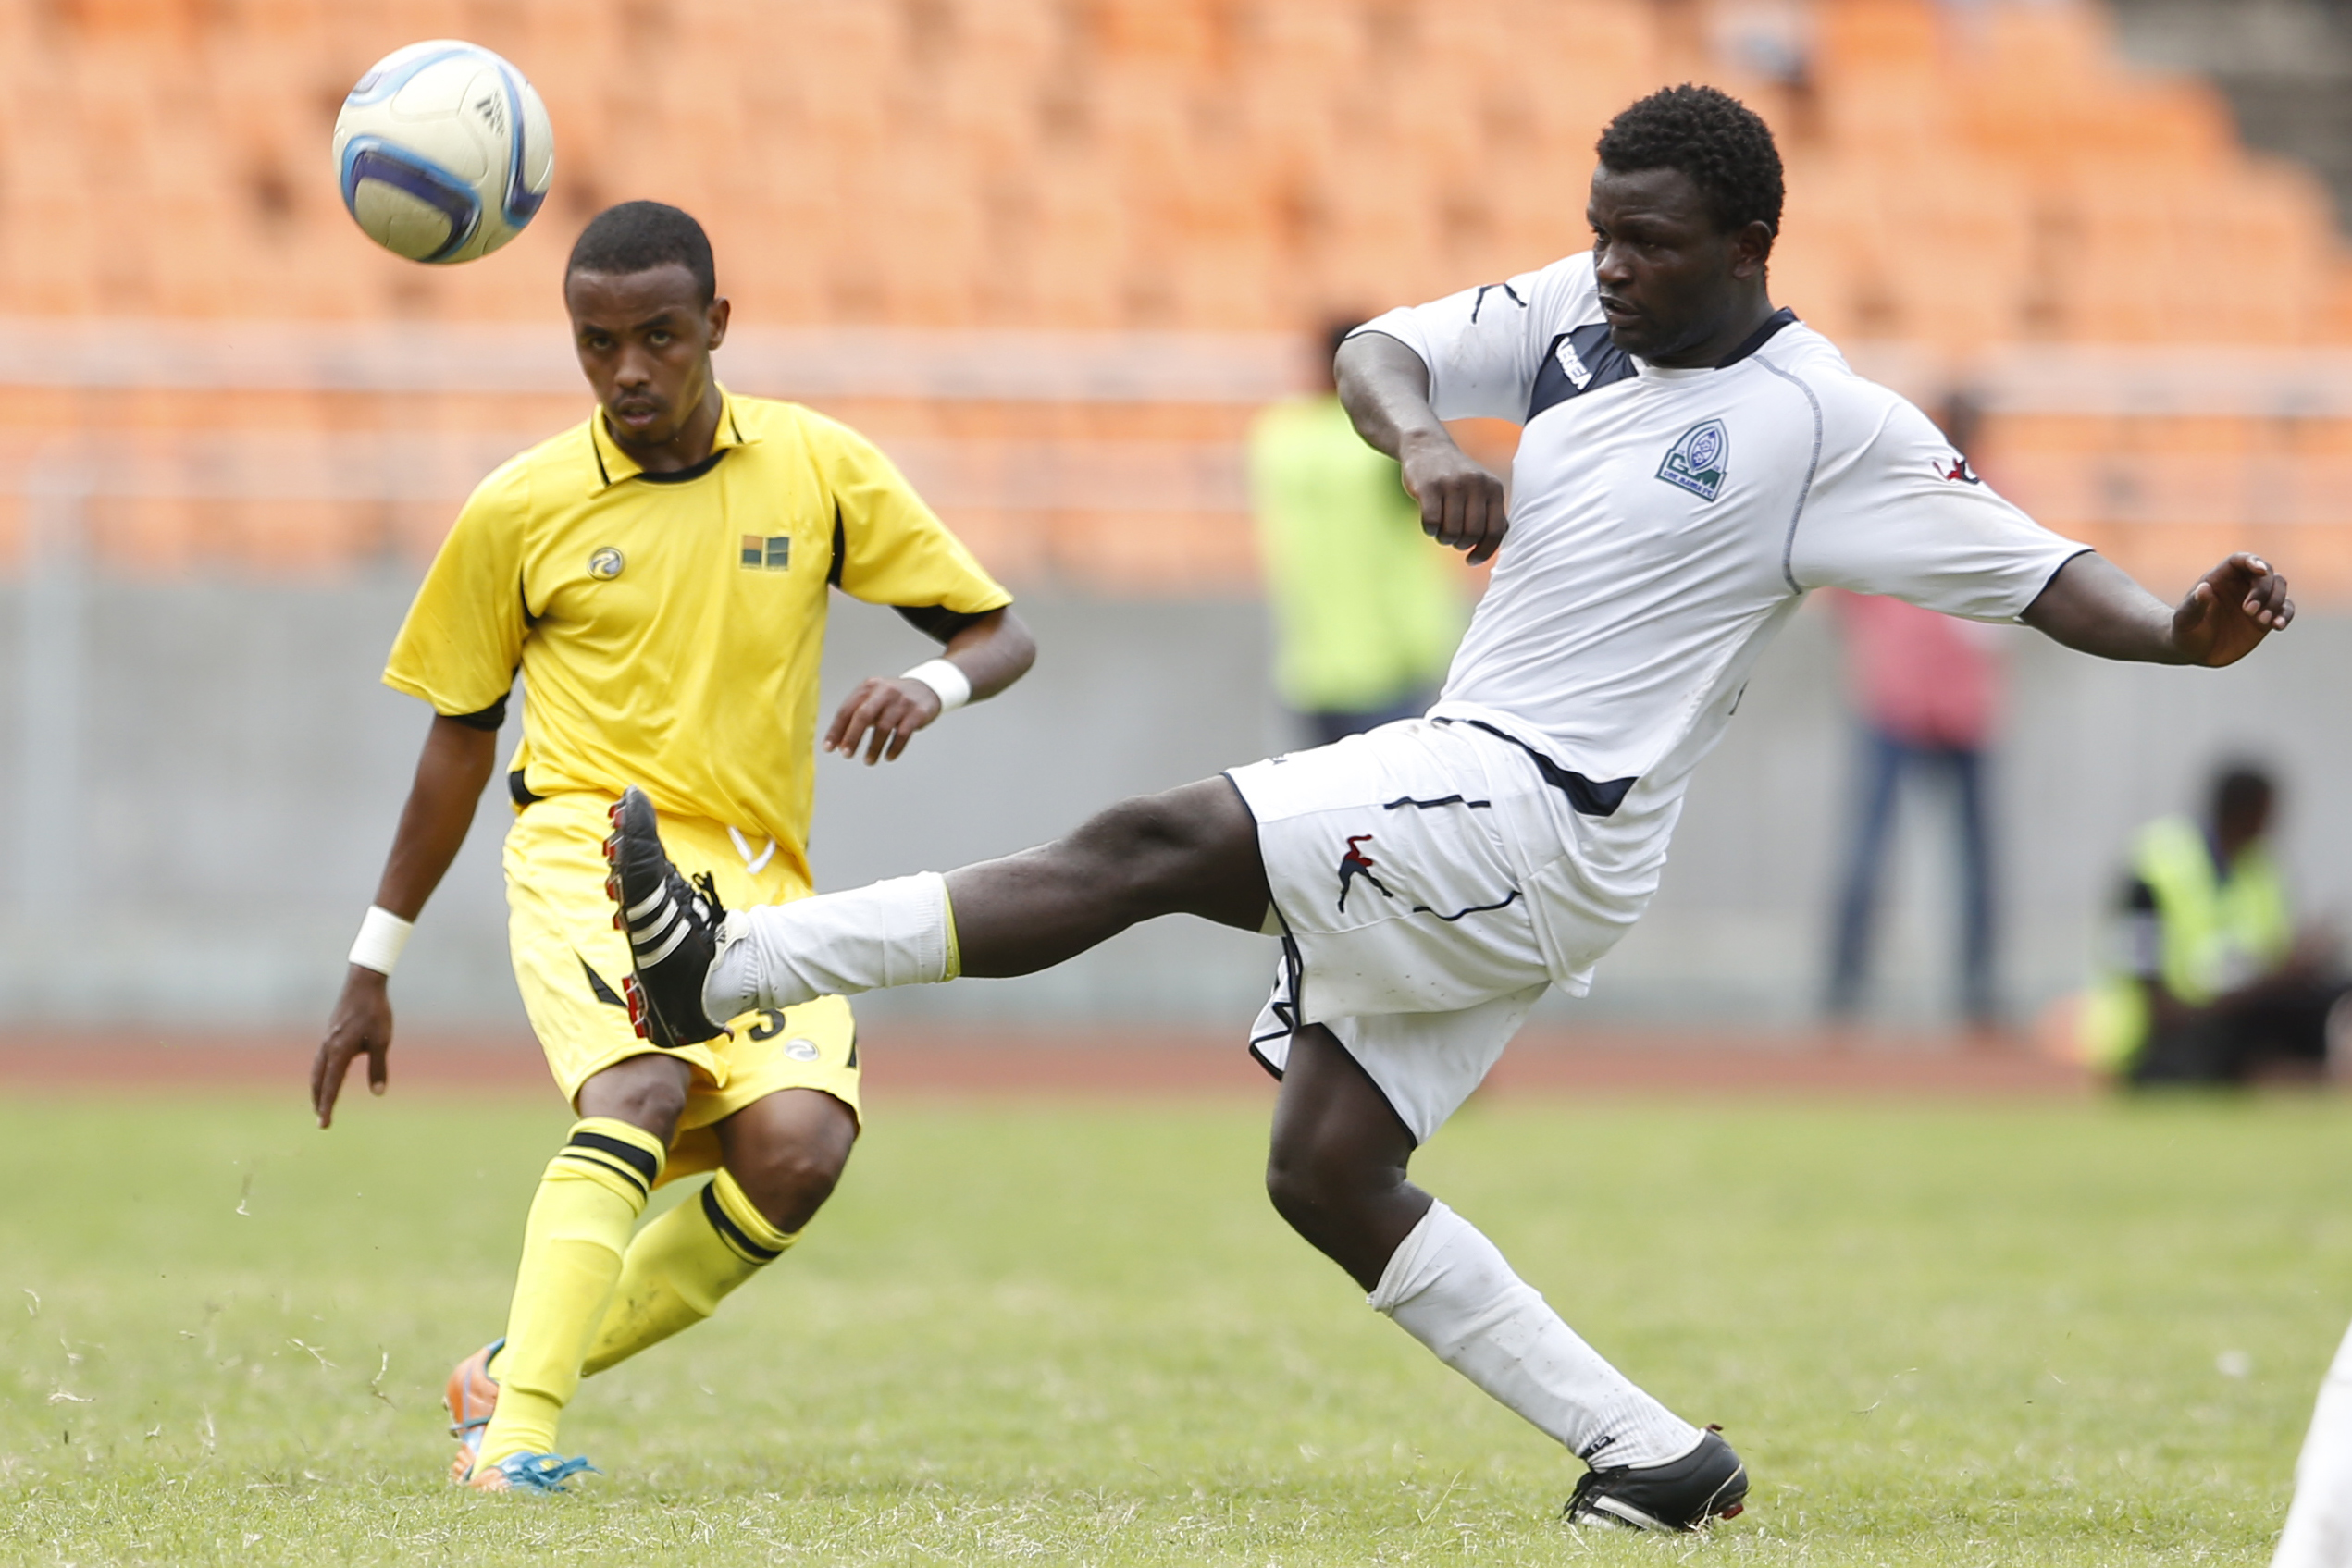 Mohamed Bouh Guedi of Telecom FC (L) vies against Enock Agwanda of Gor Mahia FC